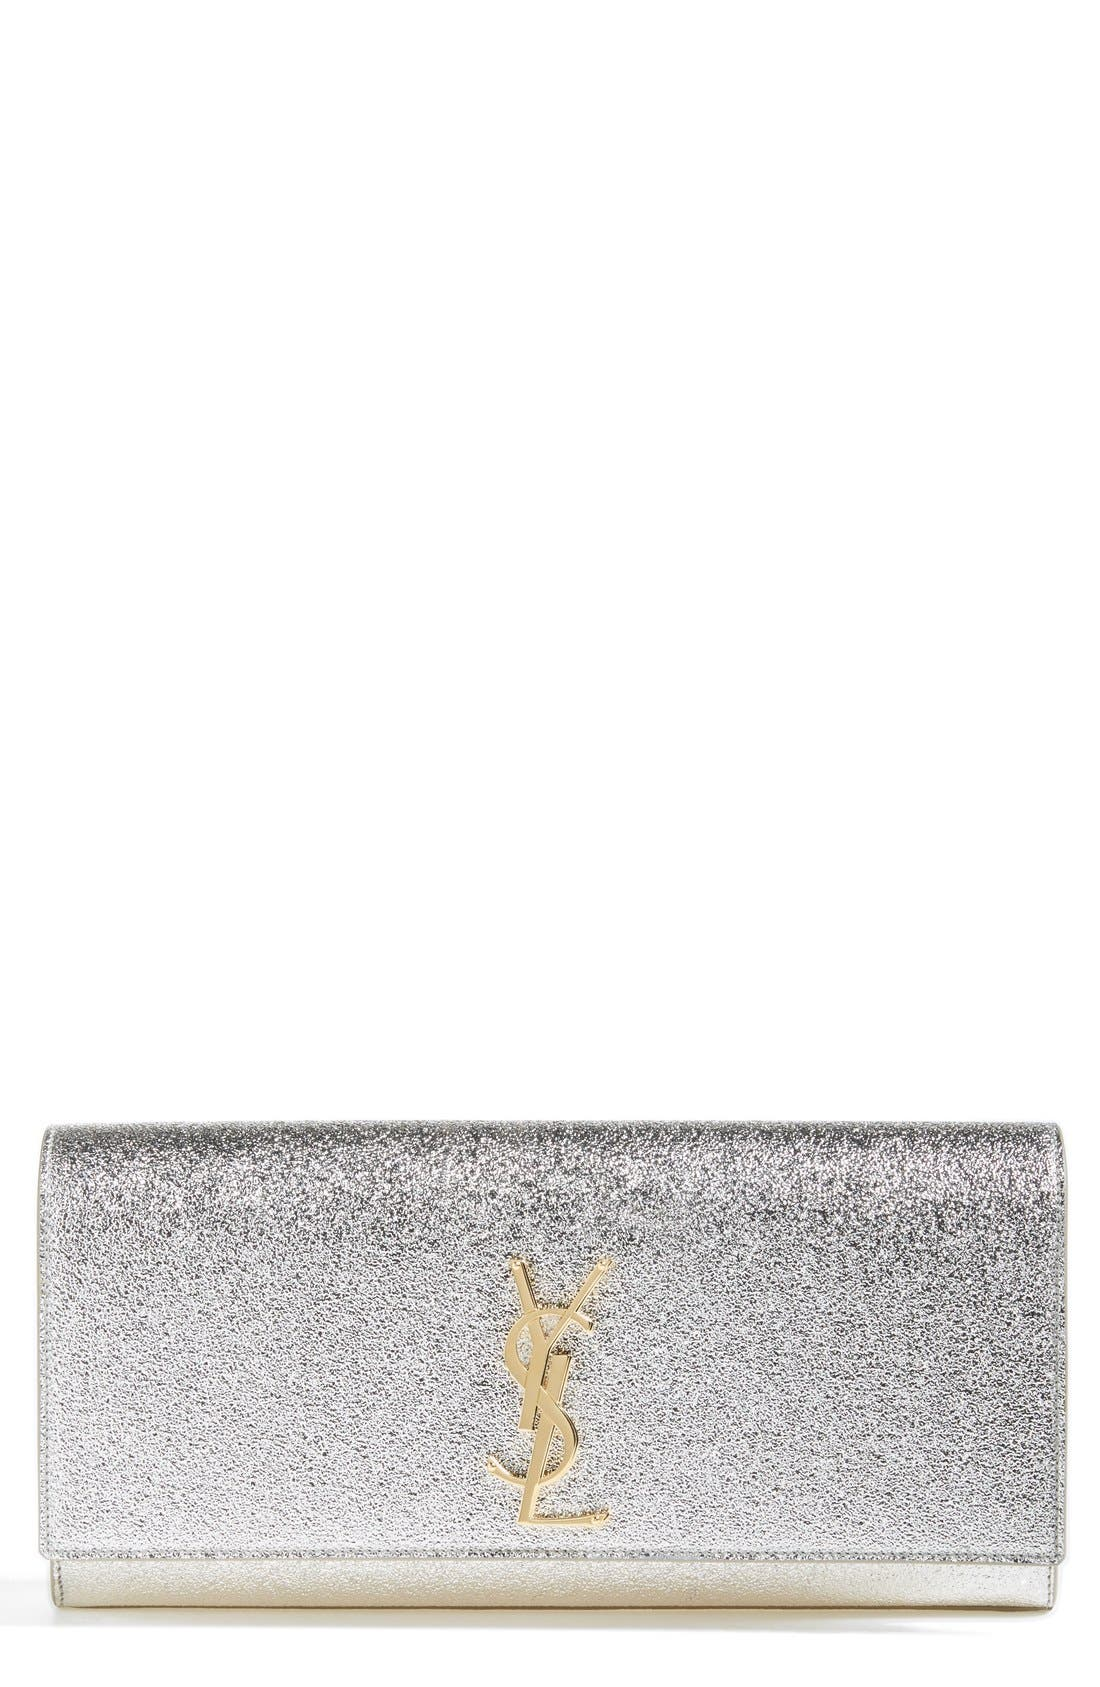 Alternate Image 1 Selected - Saint Laurent 'Cassandre' Leather Clutch